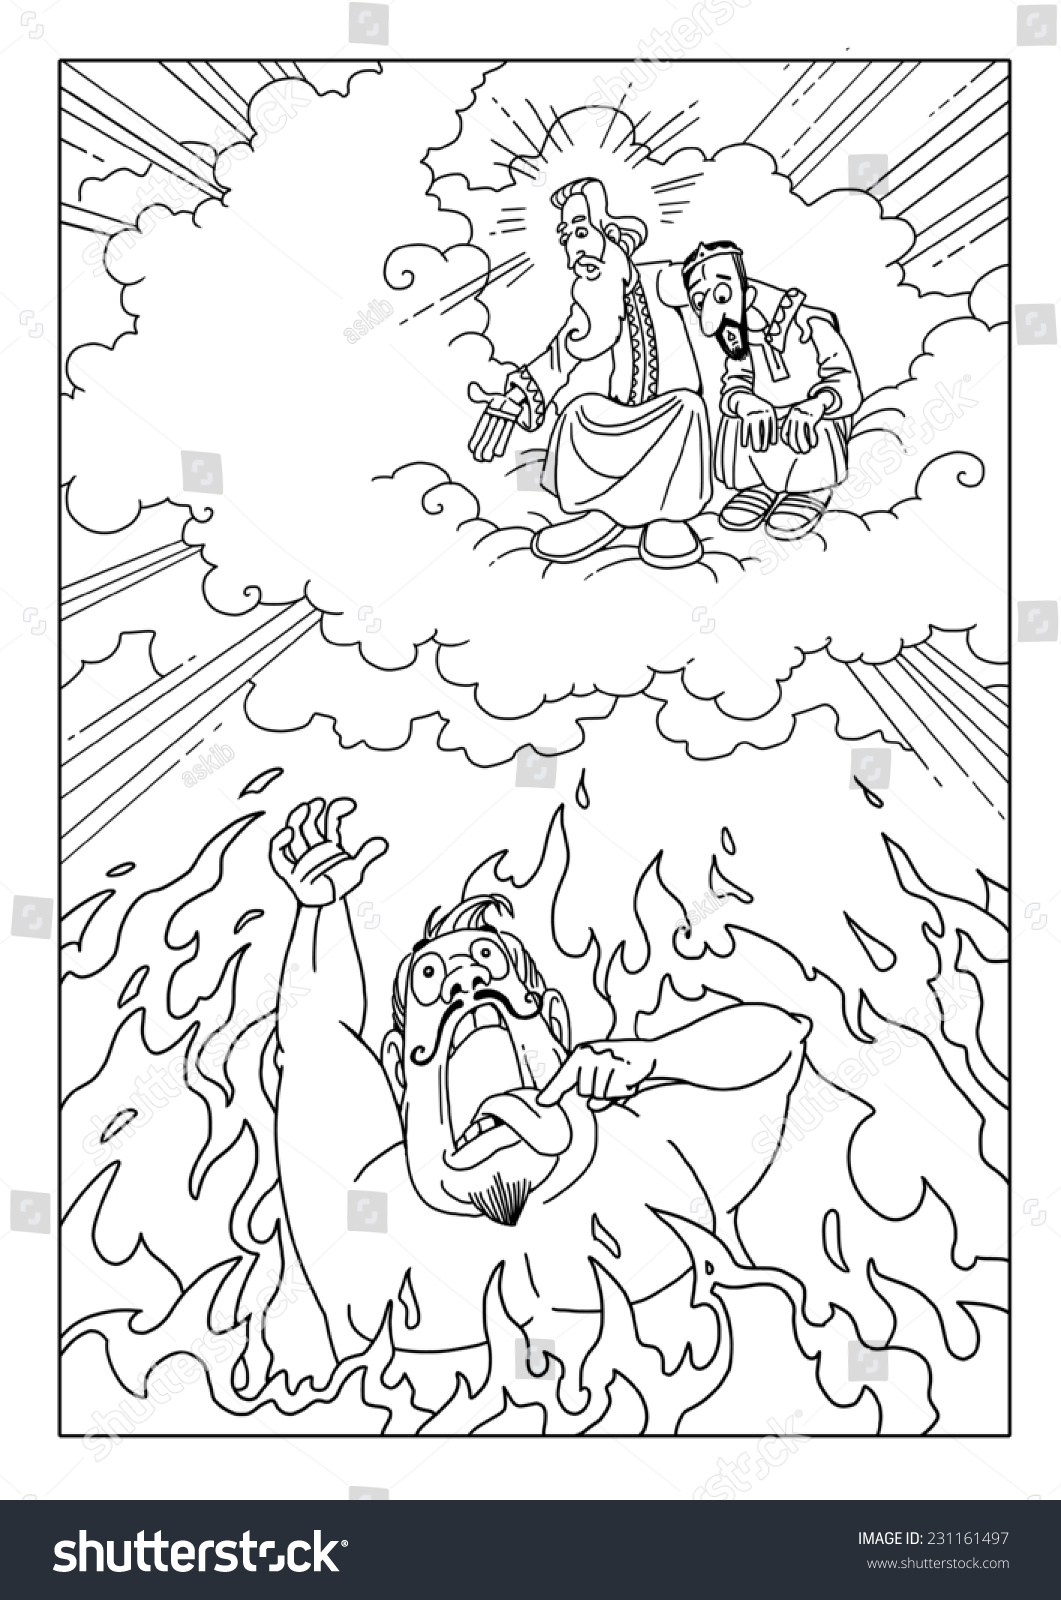 Coloring pages for lazarus and rich man - The Rich Man Is Suffering In Hell Fire And Asks Lazarus And Abraham To Help